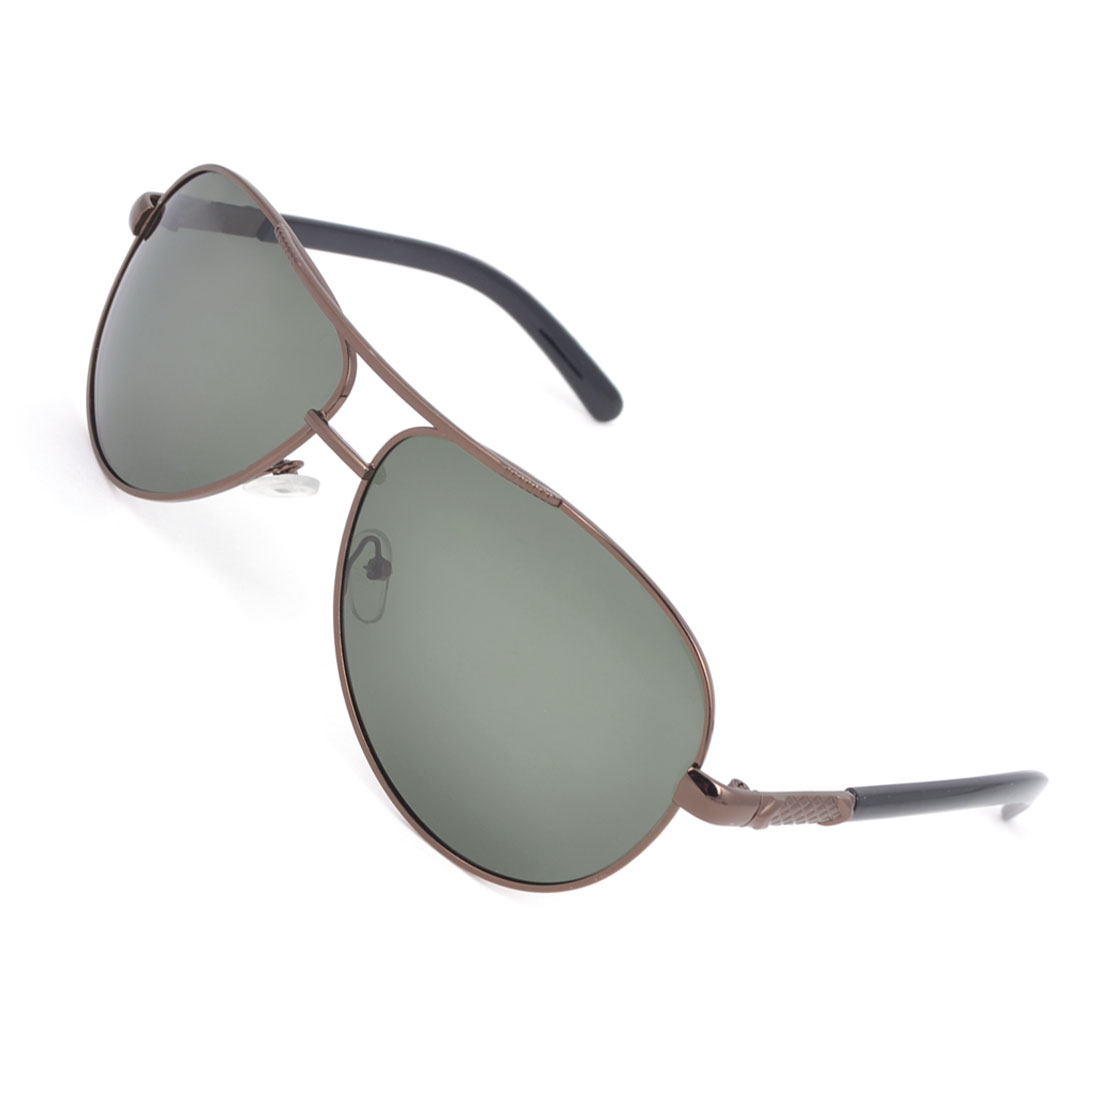 Gray Green Teardrop Lens Full Rimmed Leisure Polarized Sunglasses for Man